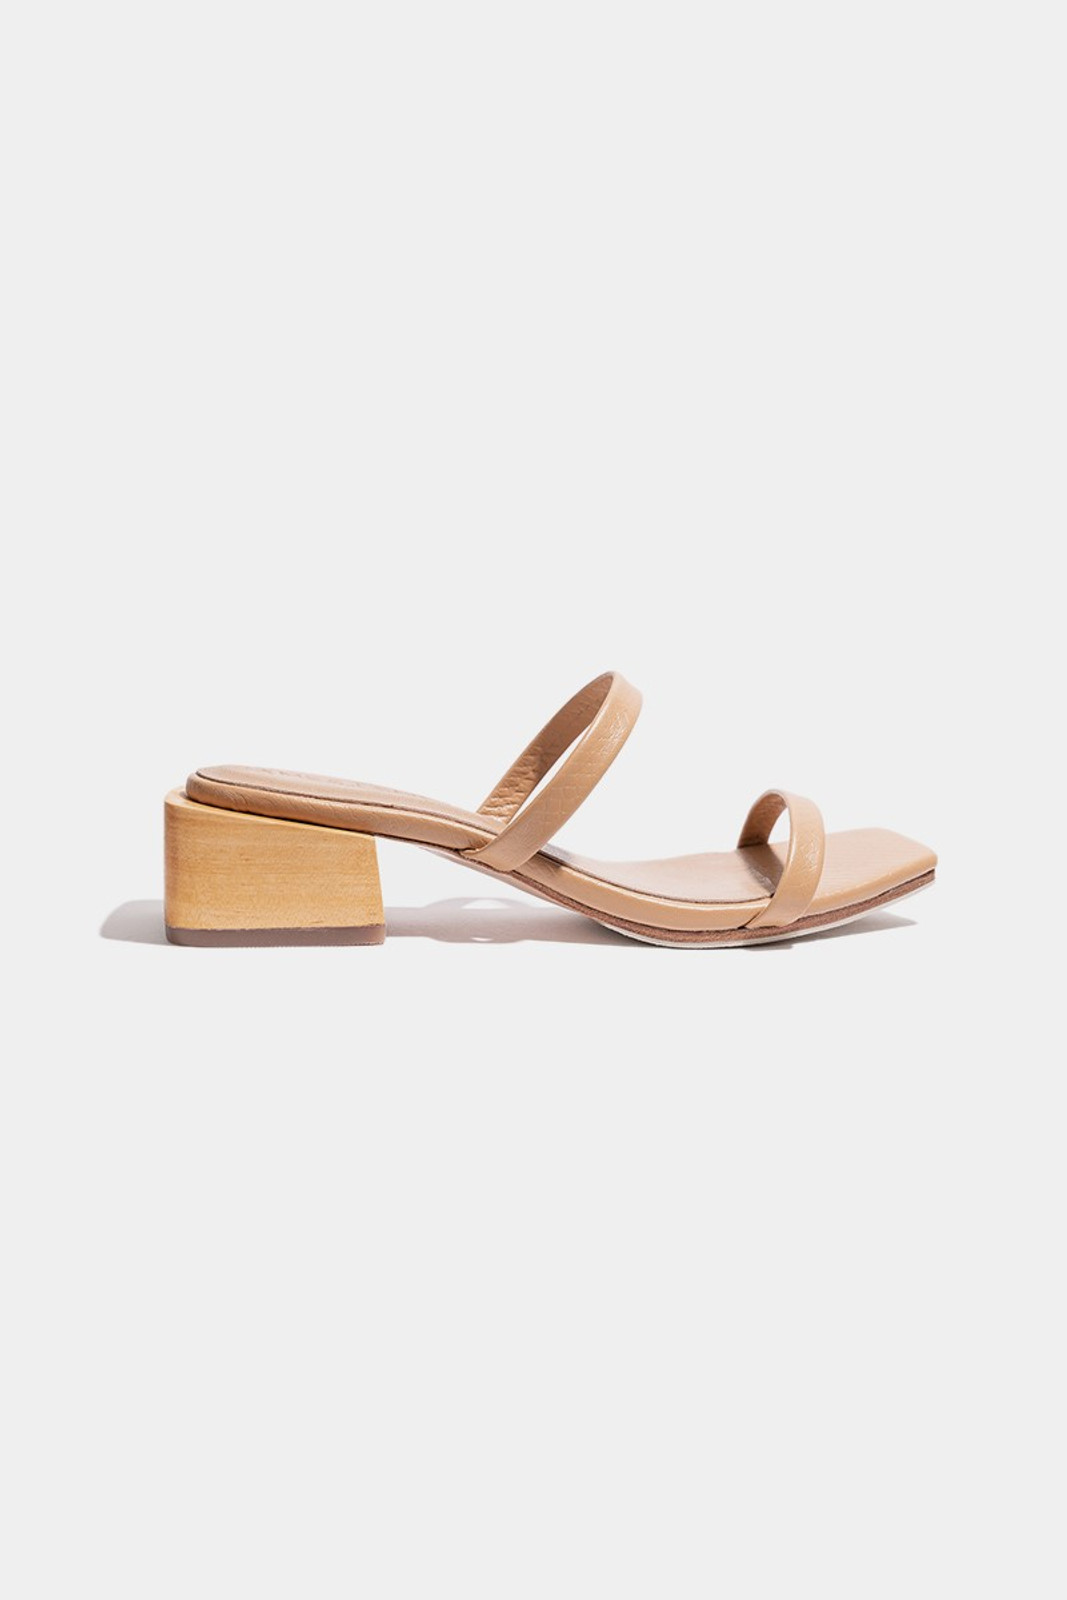 Elka Collective SALO SANDAL Neutrals  0